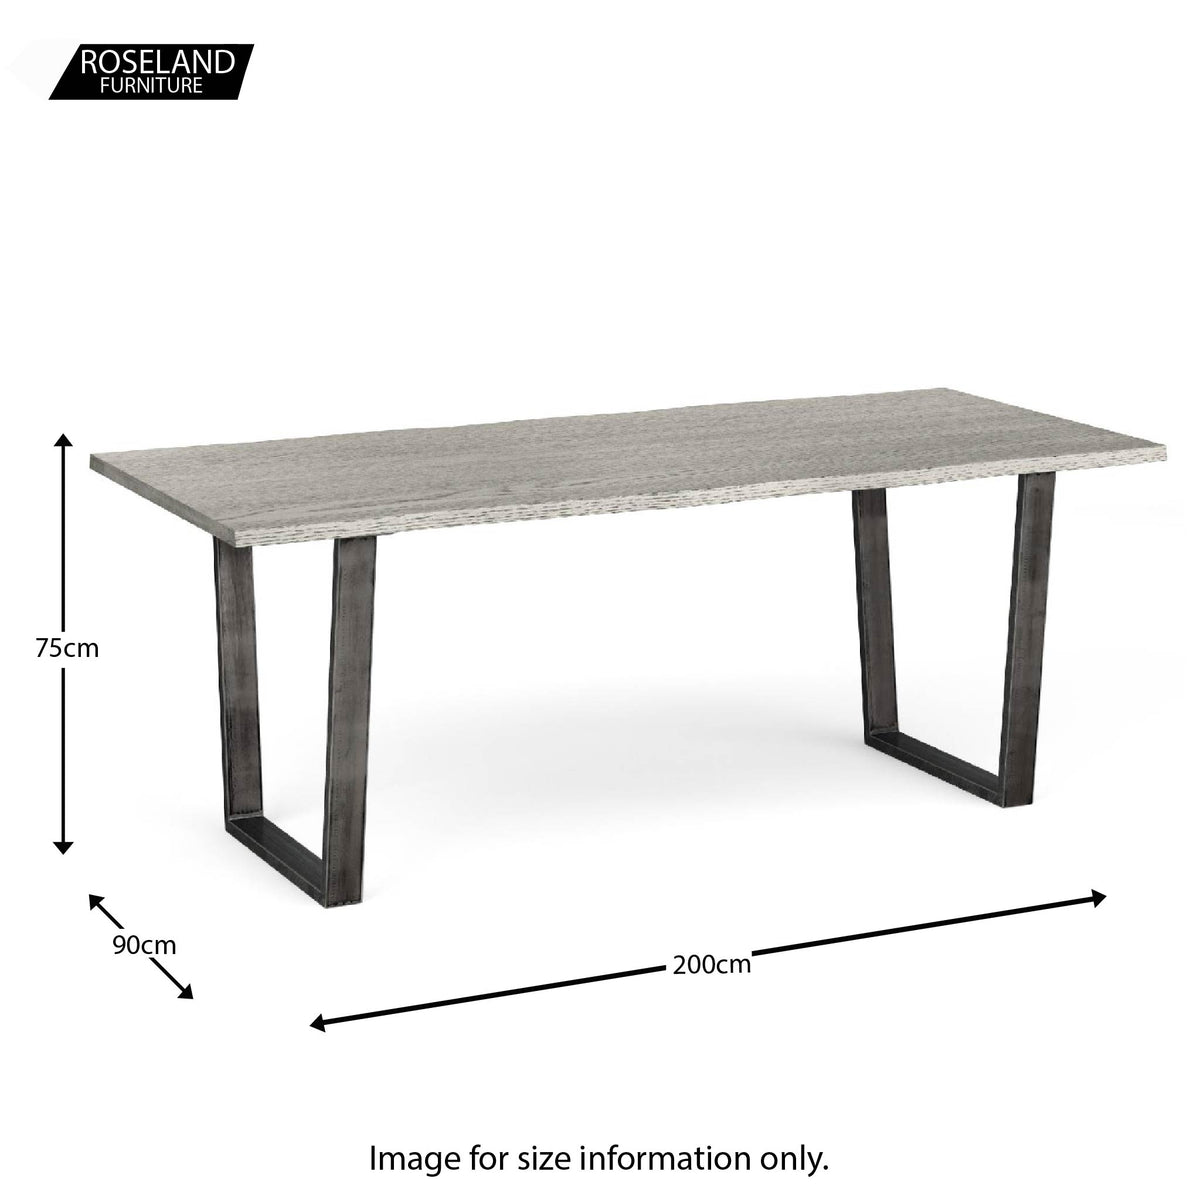 Dimensions for The Soho Large Industrial Grey Dining Table 200cm